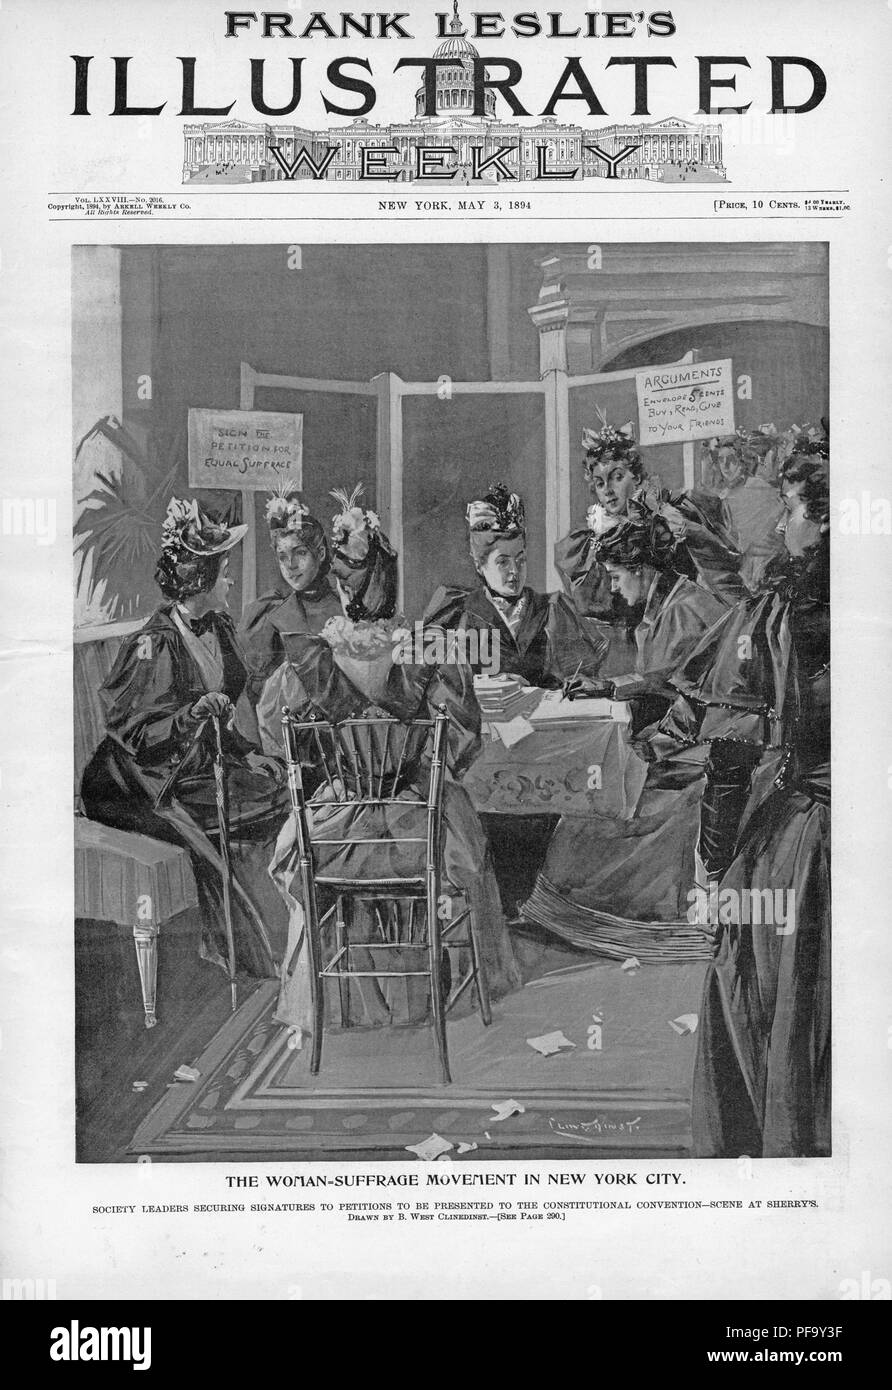 Black and white print illustrating suffragists seated in a parlor at Sherry's, securing signatures for a petition to include women's voting rights in a new draft of New York's state constitution, captioned 'The Woman-Suffrage Movement in New York City,' illustrated by Benjamin West Clinedinst, and published in Frank Leslie's Illustrated Weekly for the American market, 1894. () - Stock Image